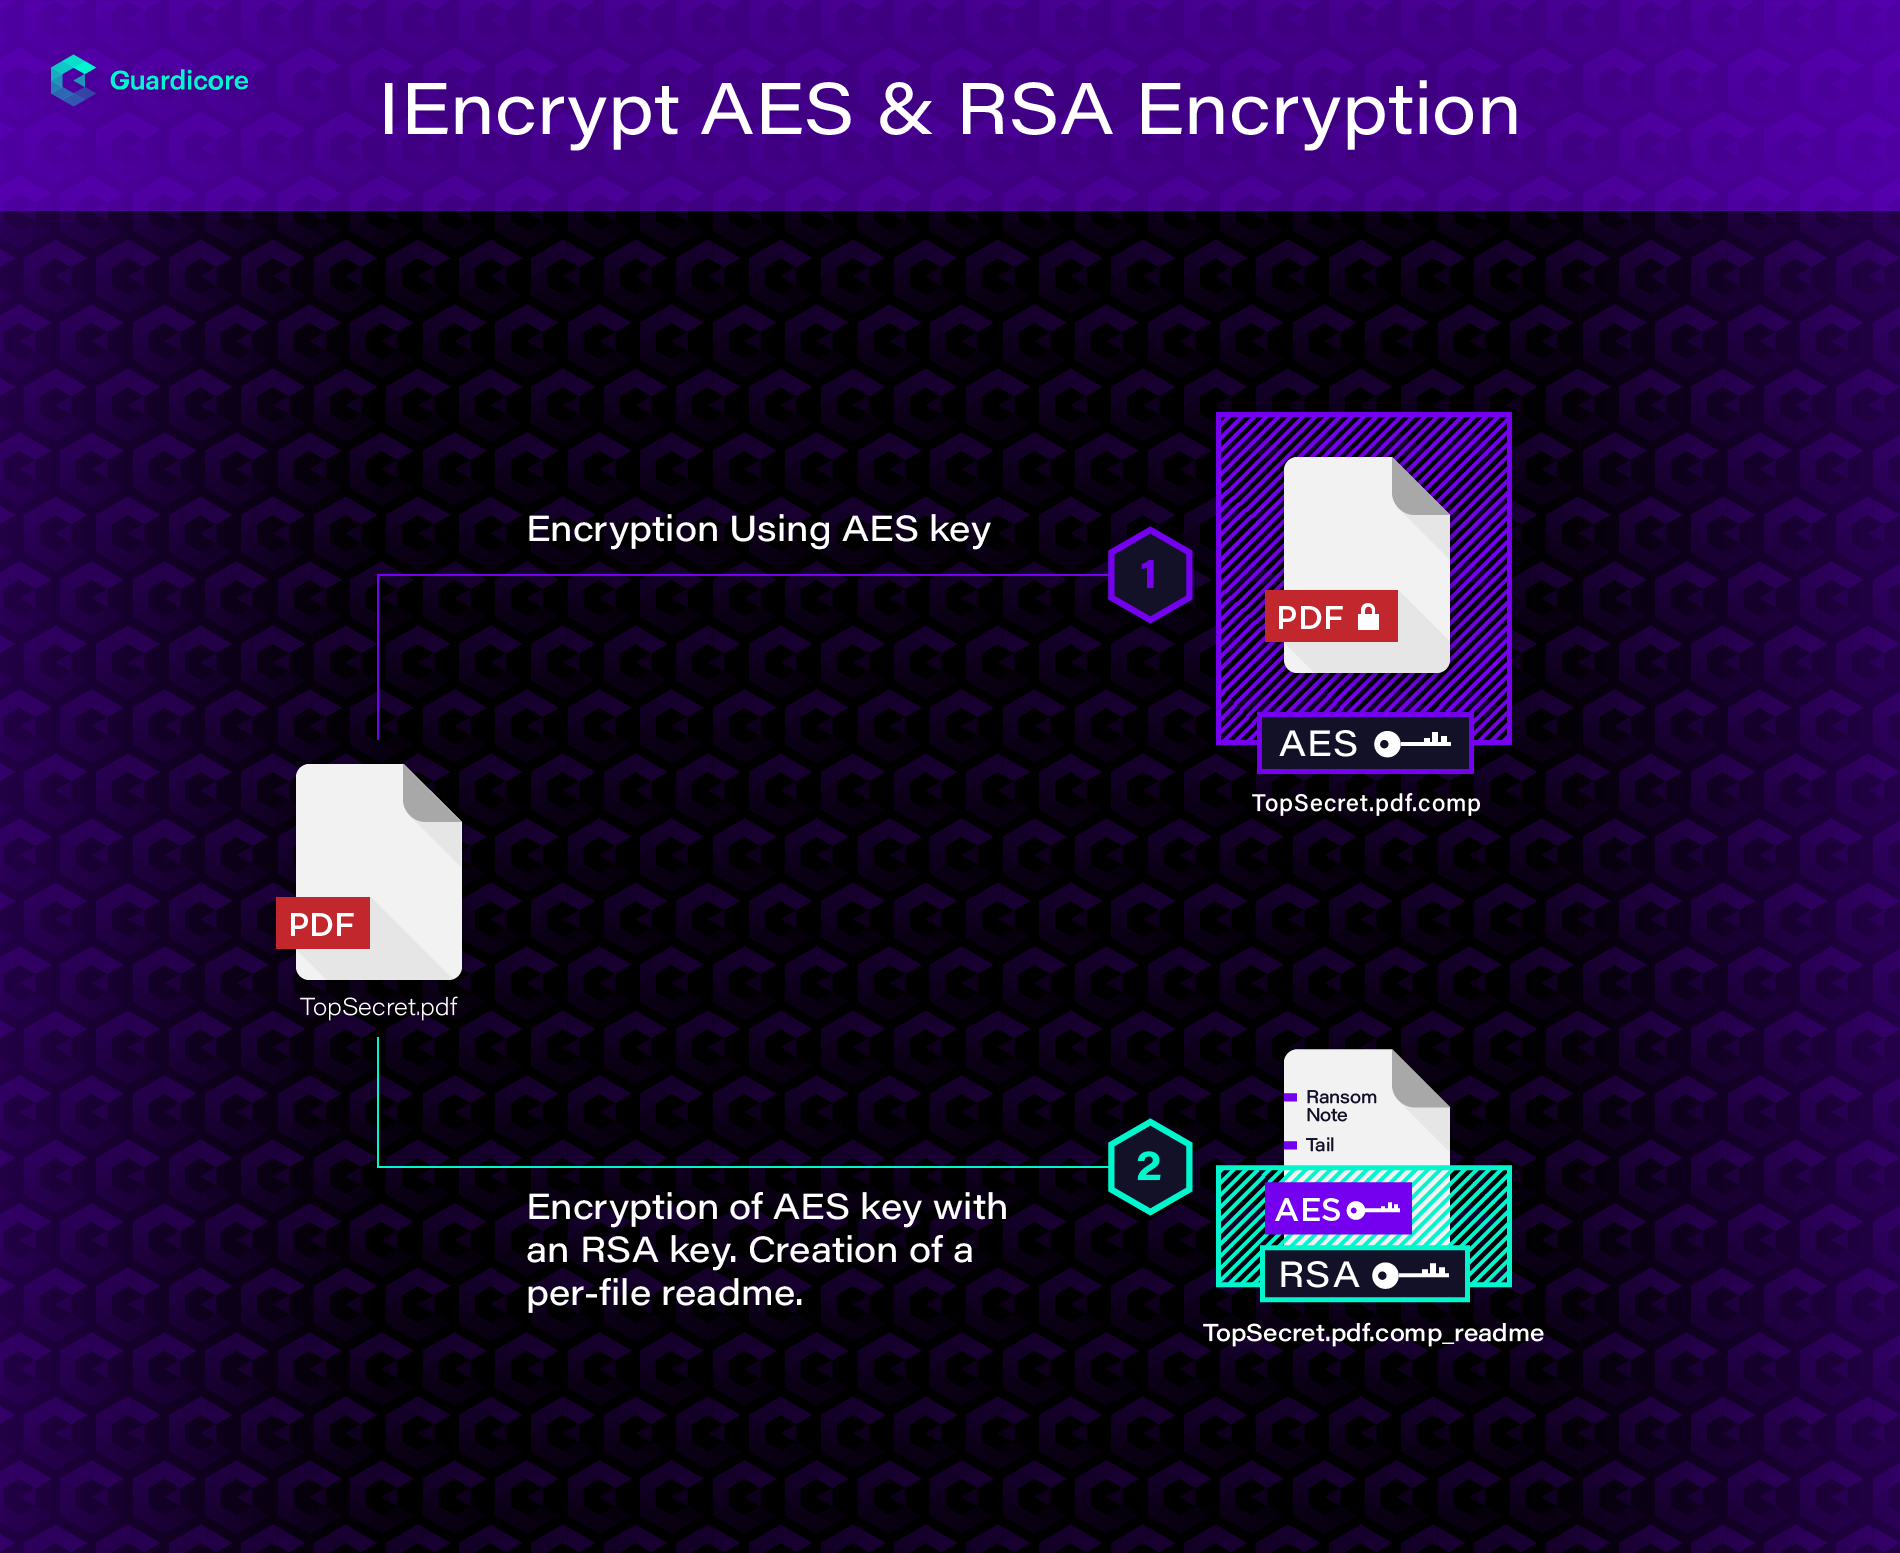 IEncrypt RSA and AES file encryption process showing how AES key is encrypted using an RSA public key which is baked into the malware